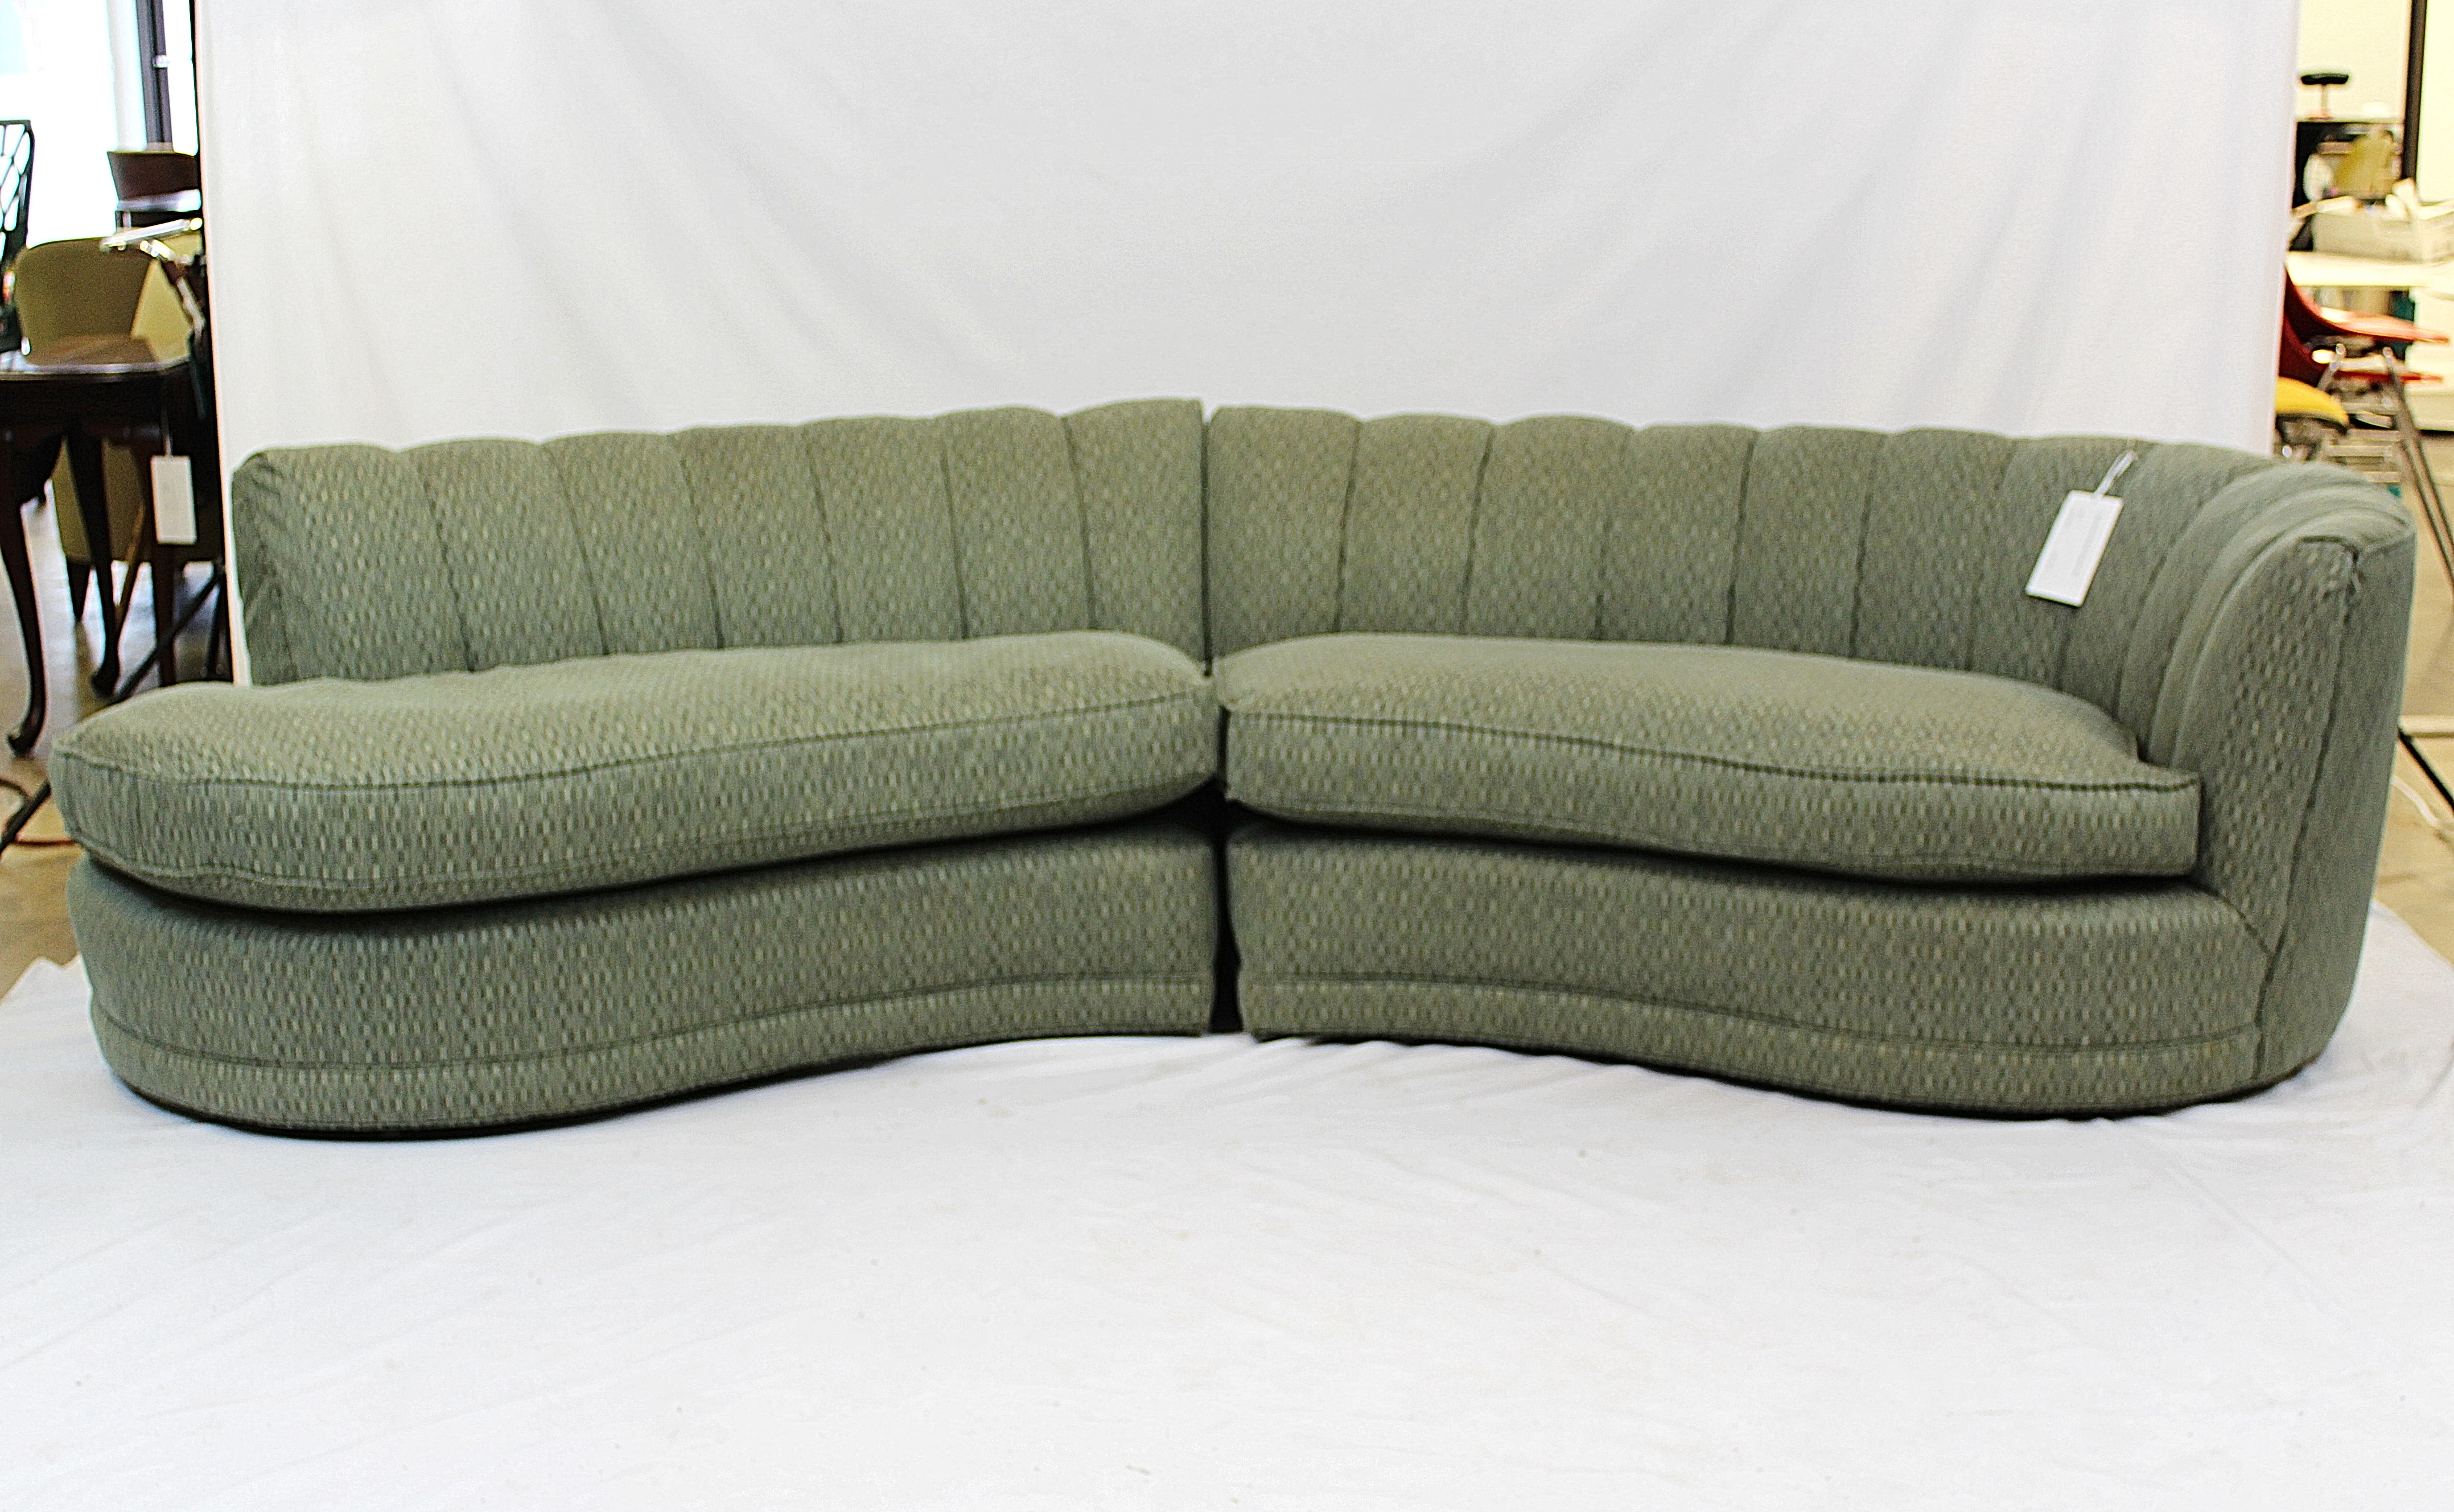 Hollywood Regency Crescent Shaped Sofa With Knoll Fabric